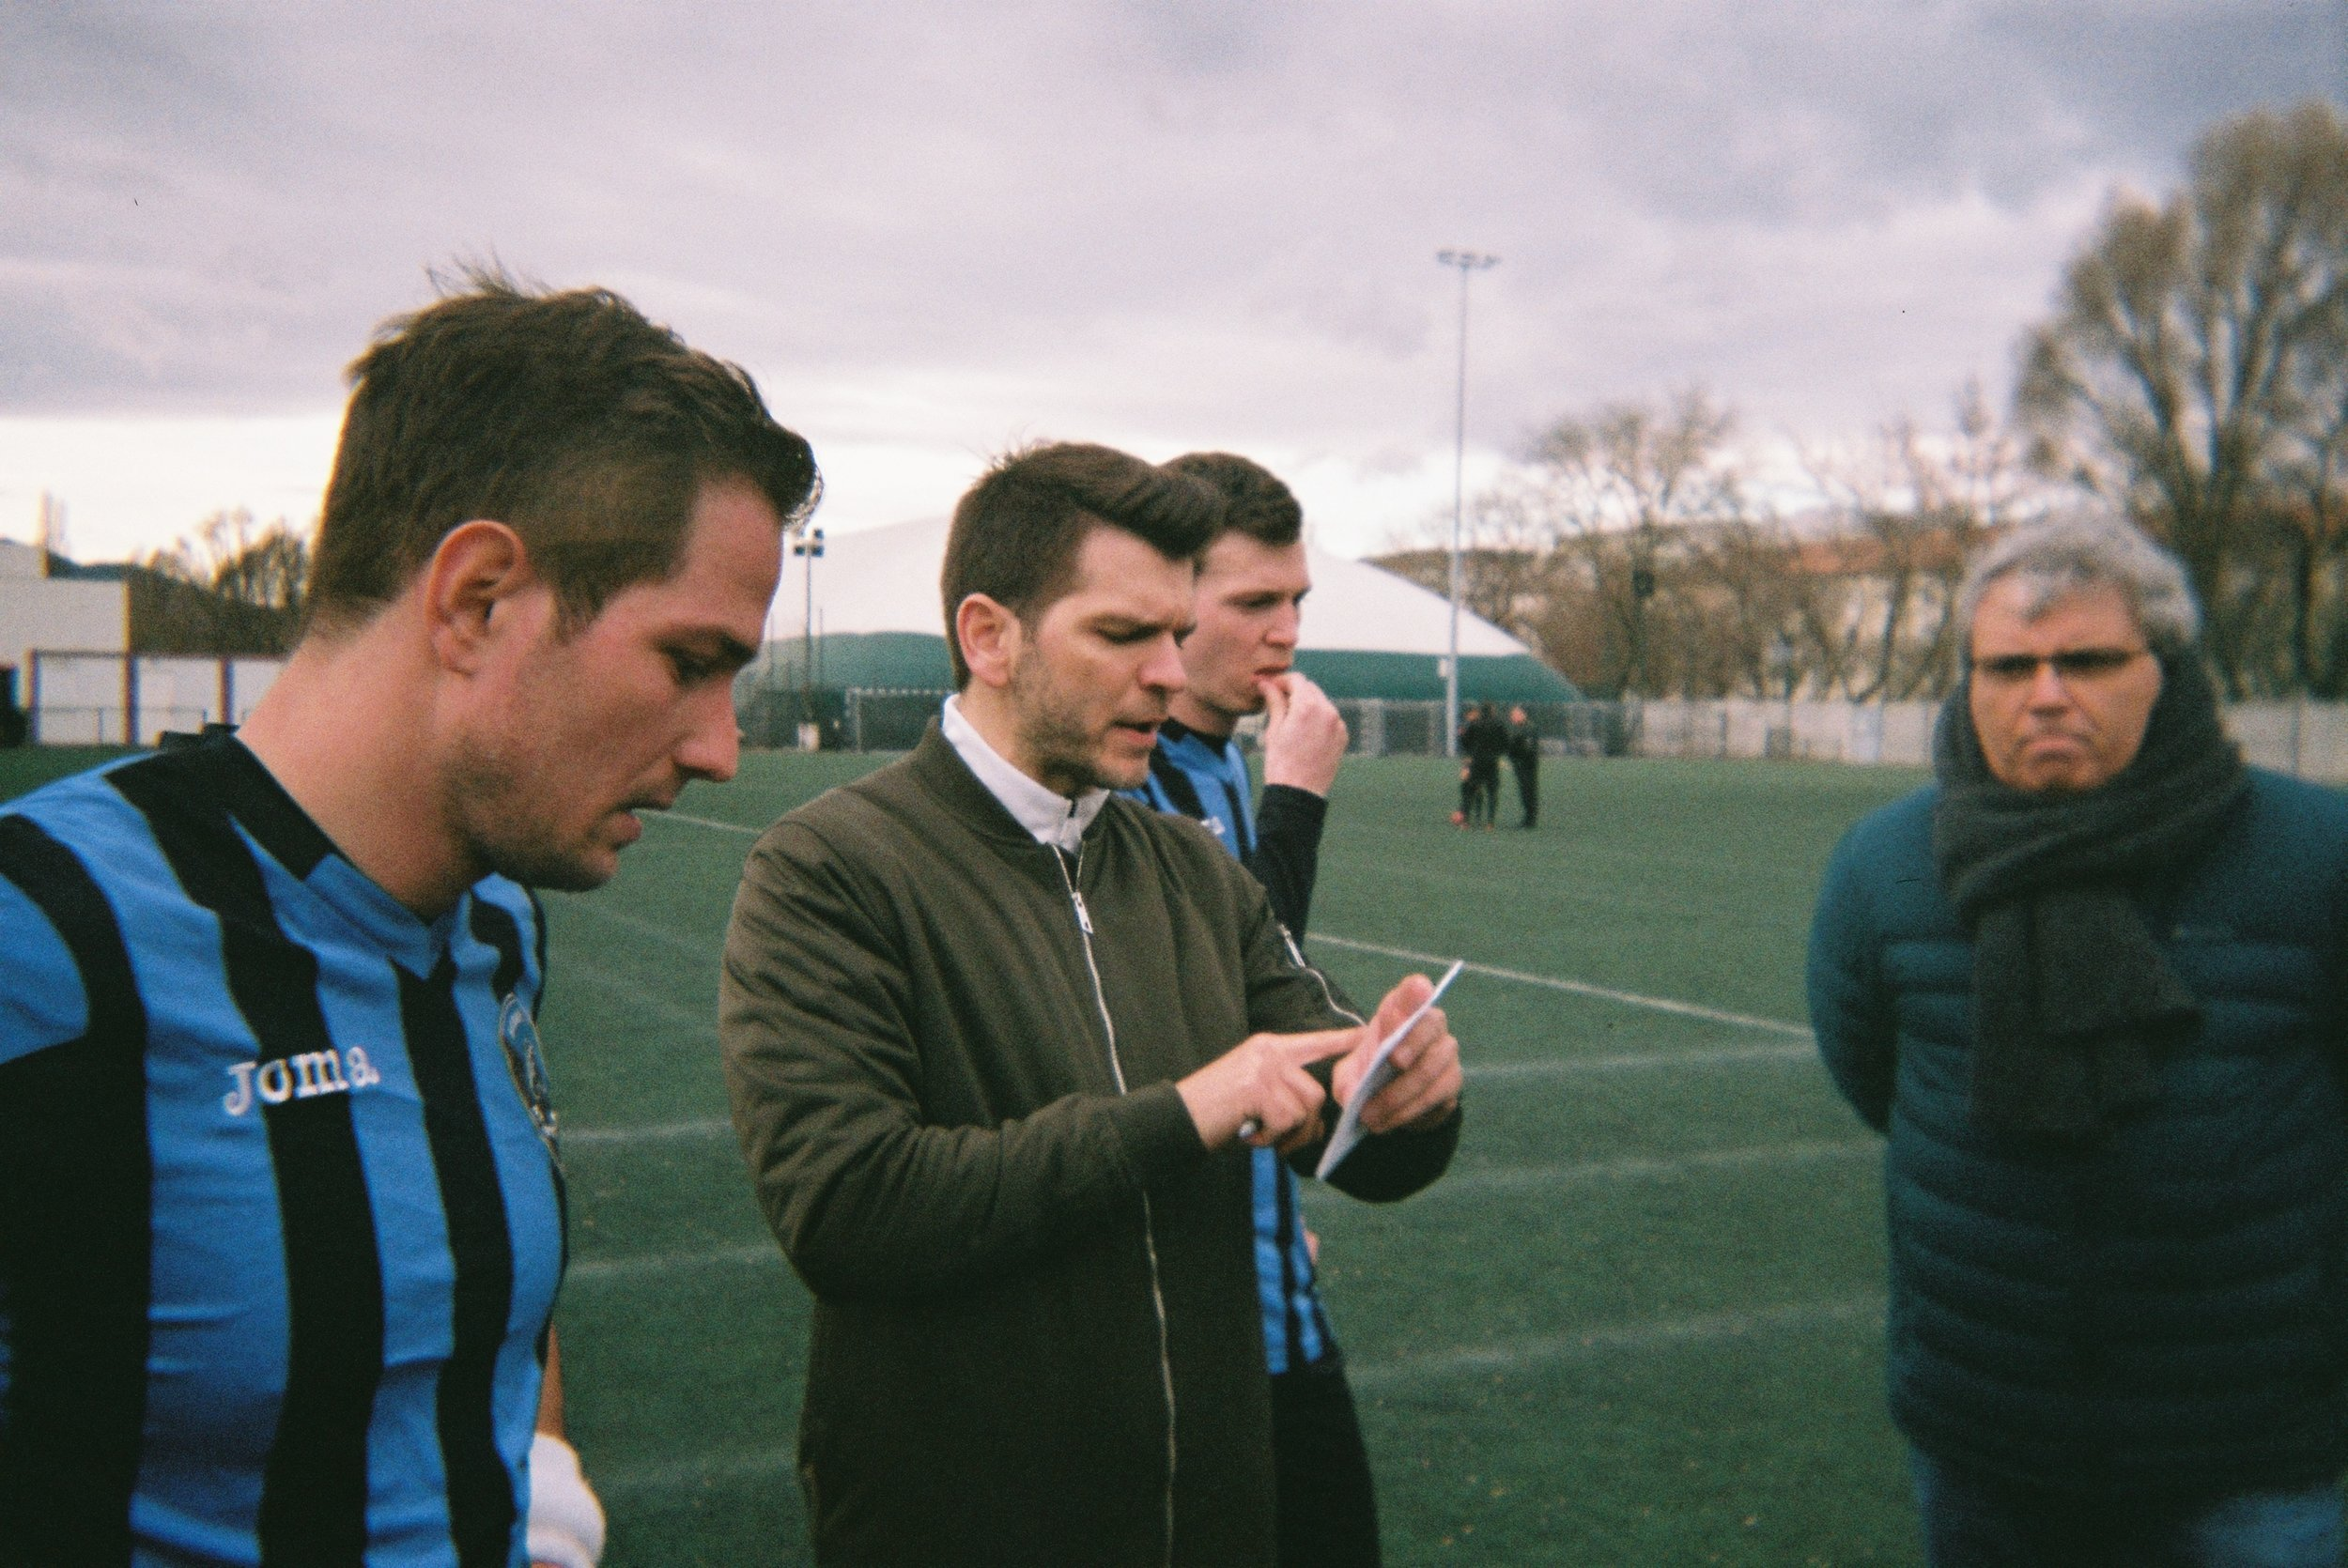 Our player-coach, Tibor Pásztor, gives instructions before a game. On the right side of the picture you can see Bertalan Molnár, the president of BAK, who re-established the traditional club last year.